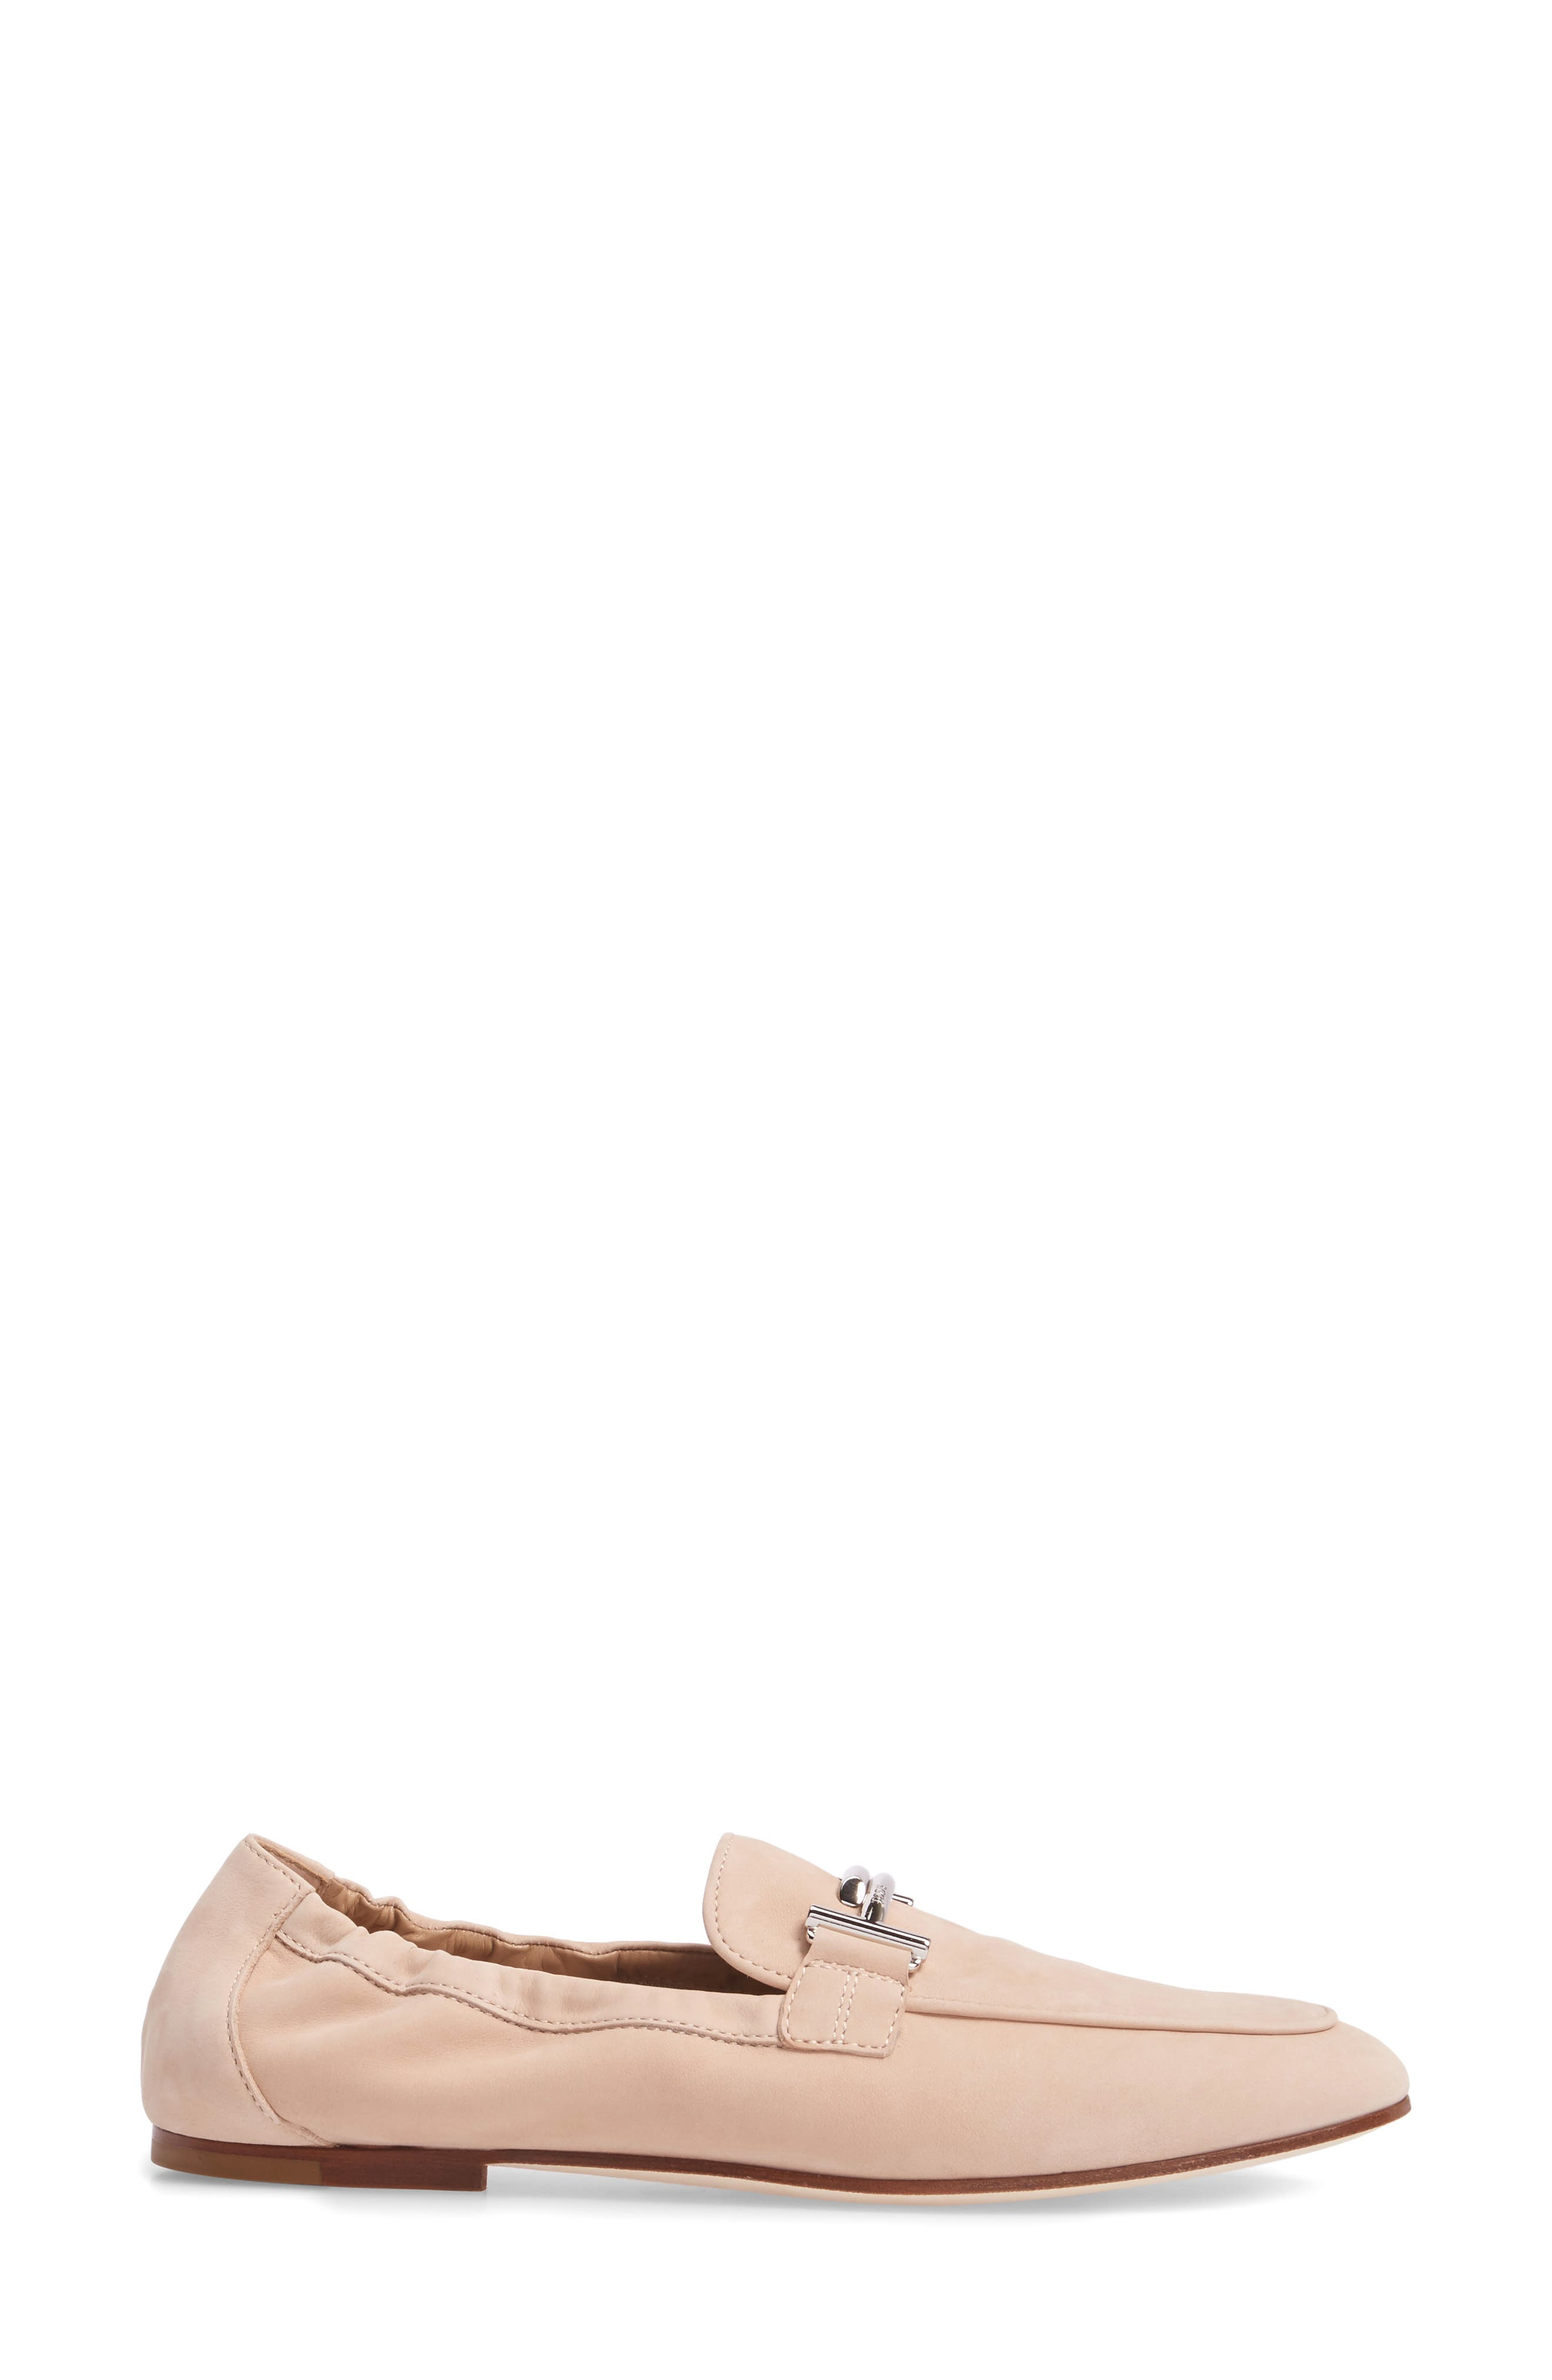 Double T Scrunch Loafer,                             Alternate thumbnail 11, color,